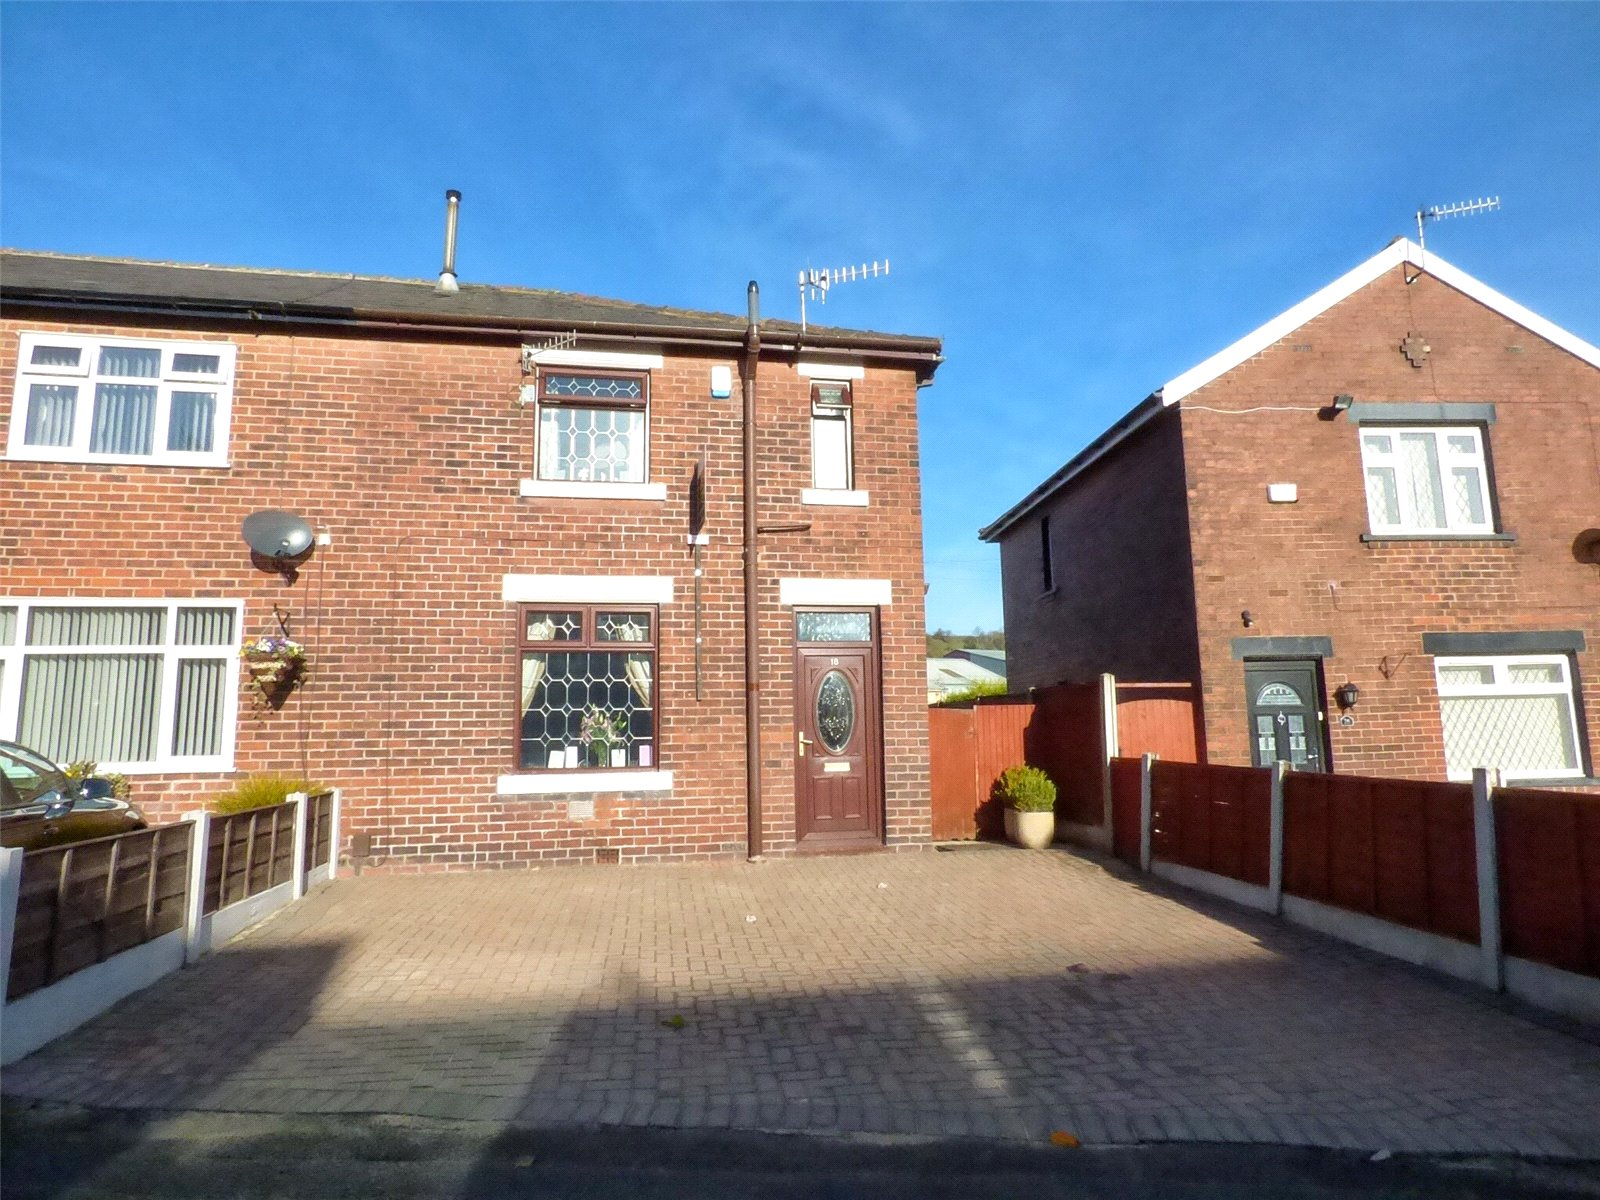 3 Bedrooms End Of Terrace House for sale in Cowie Street, Shaw, Oldham, Greater Manchester, OL2